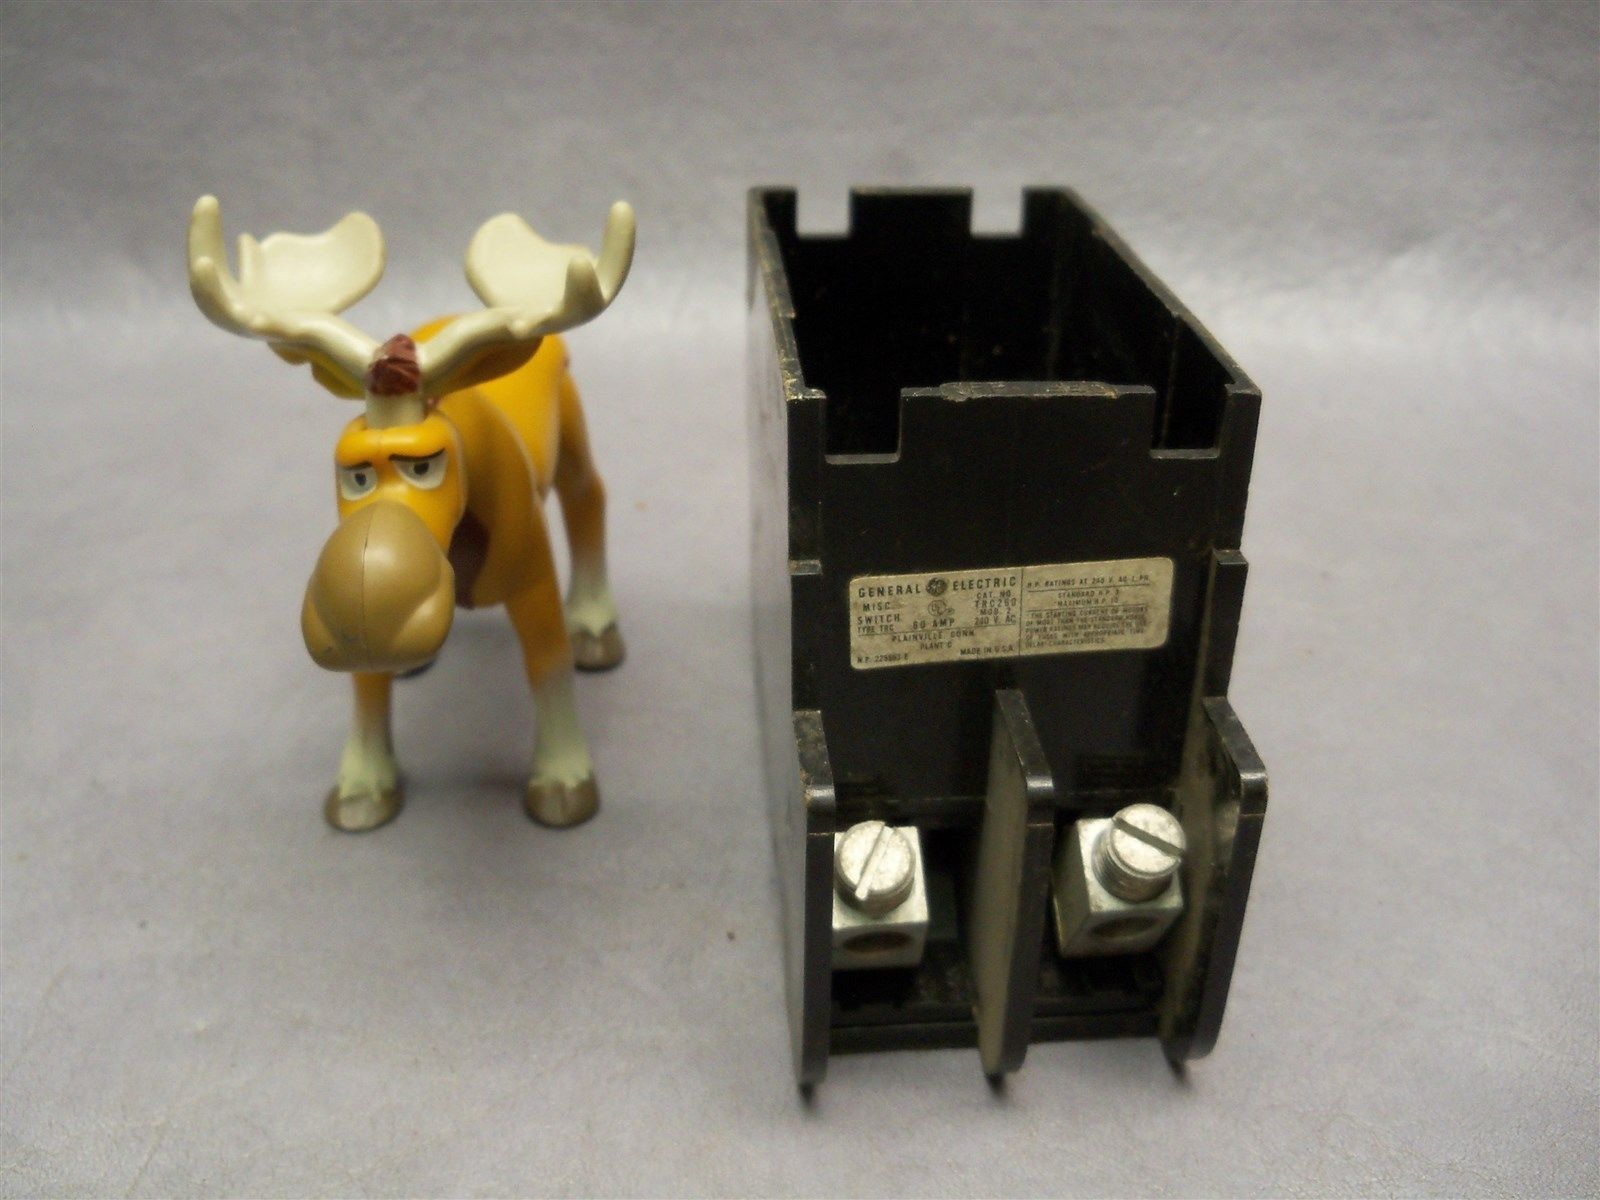 General Electric GE TRC260 Fuse Panel Box and 50 similar items. S l1600